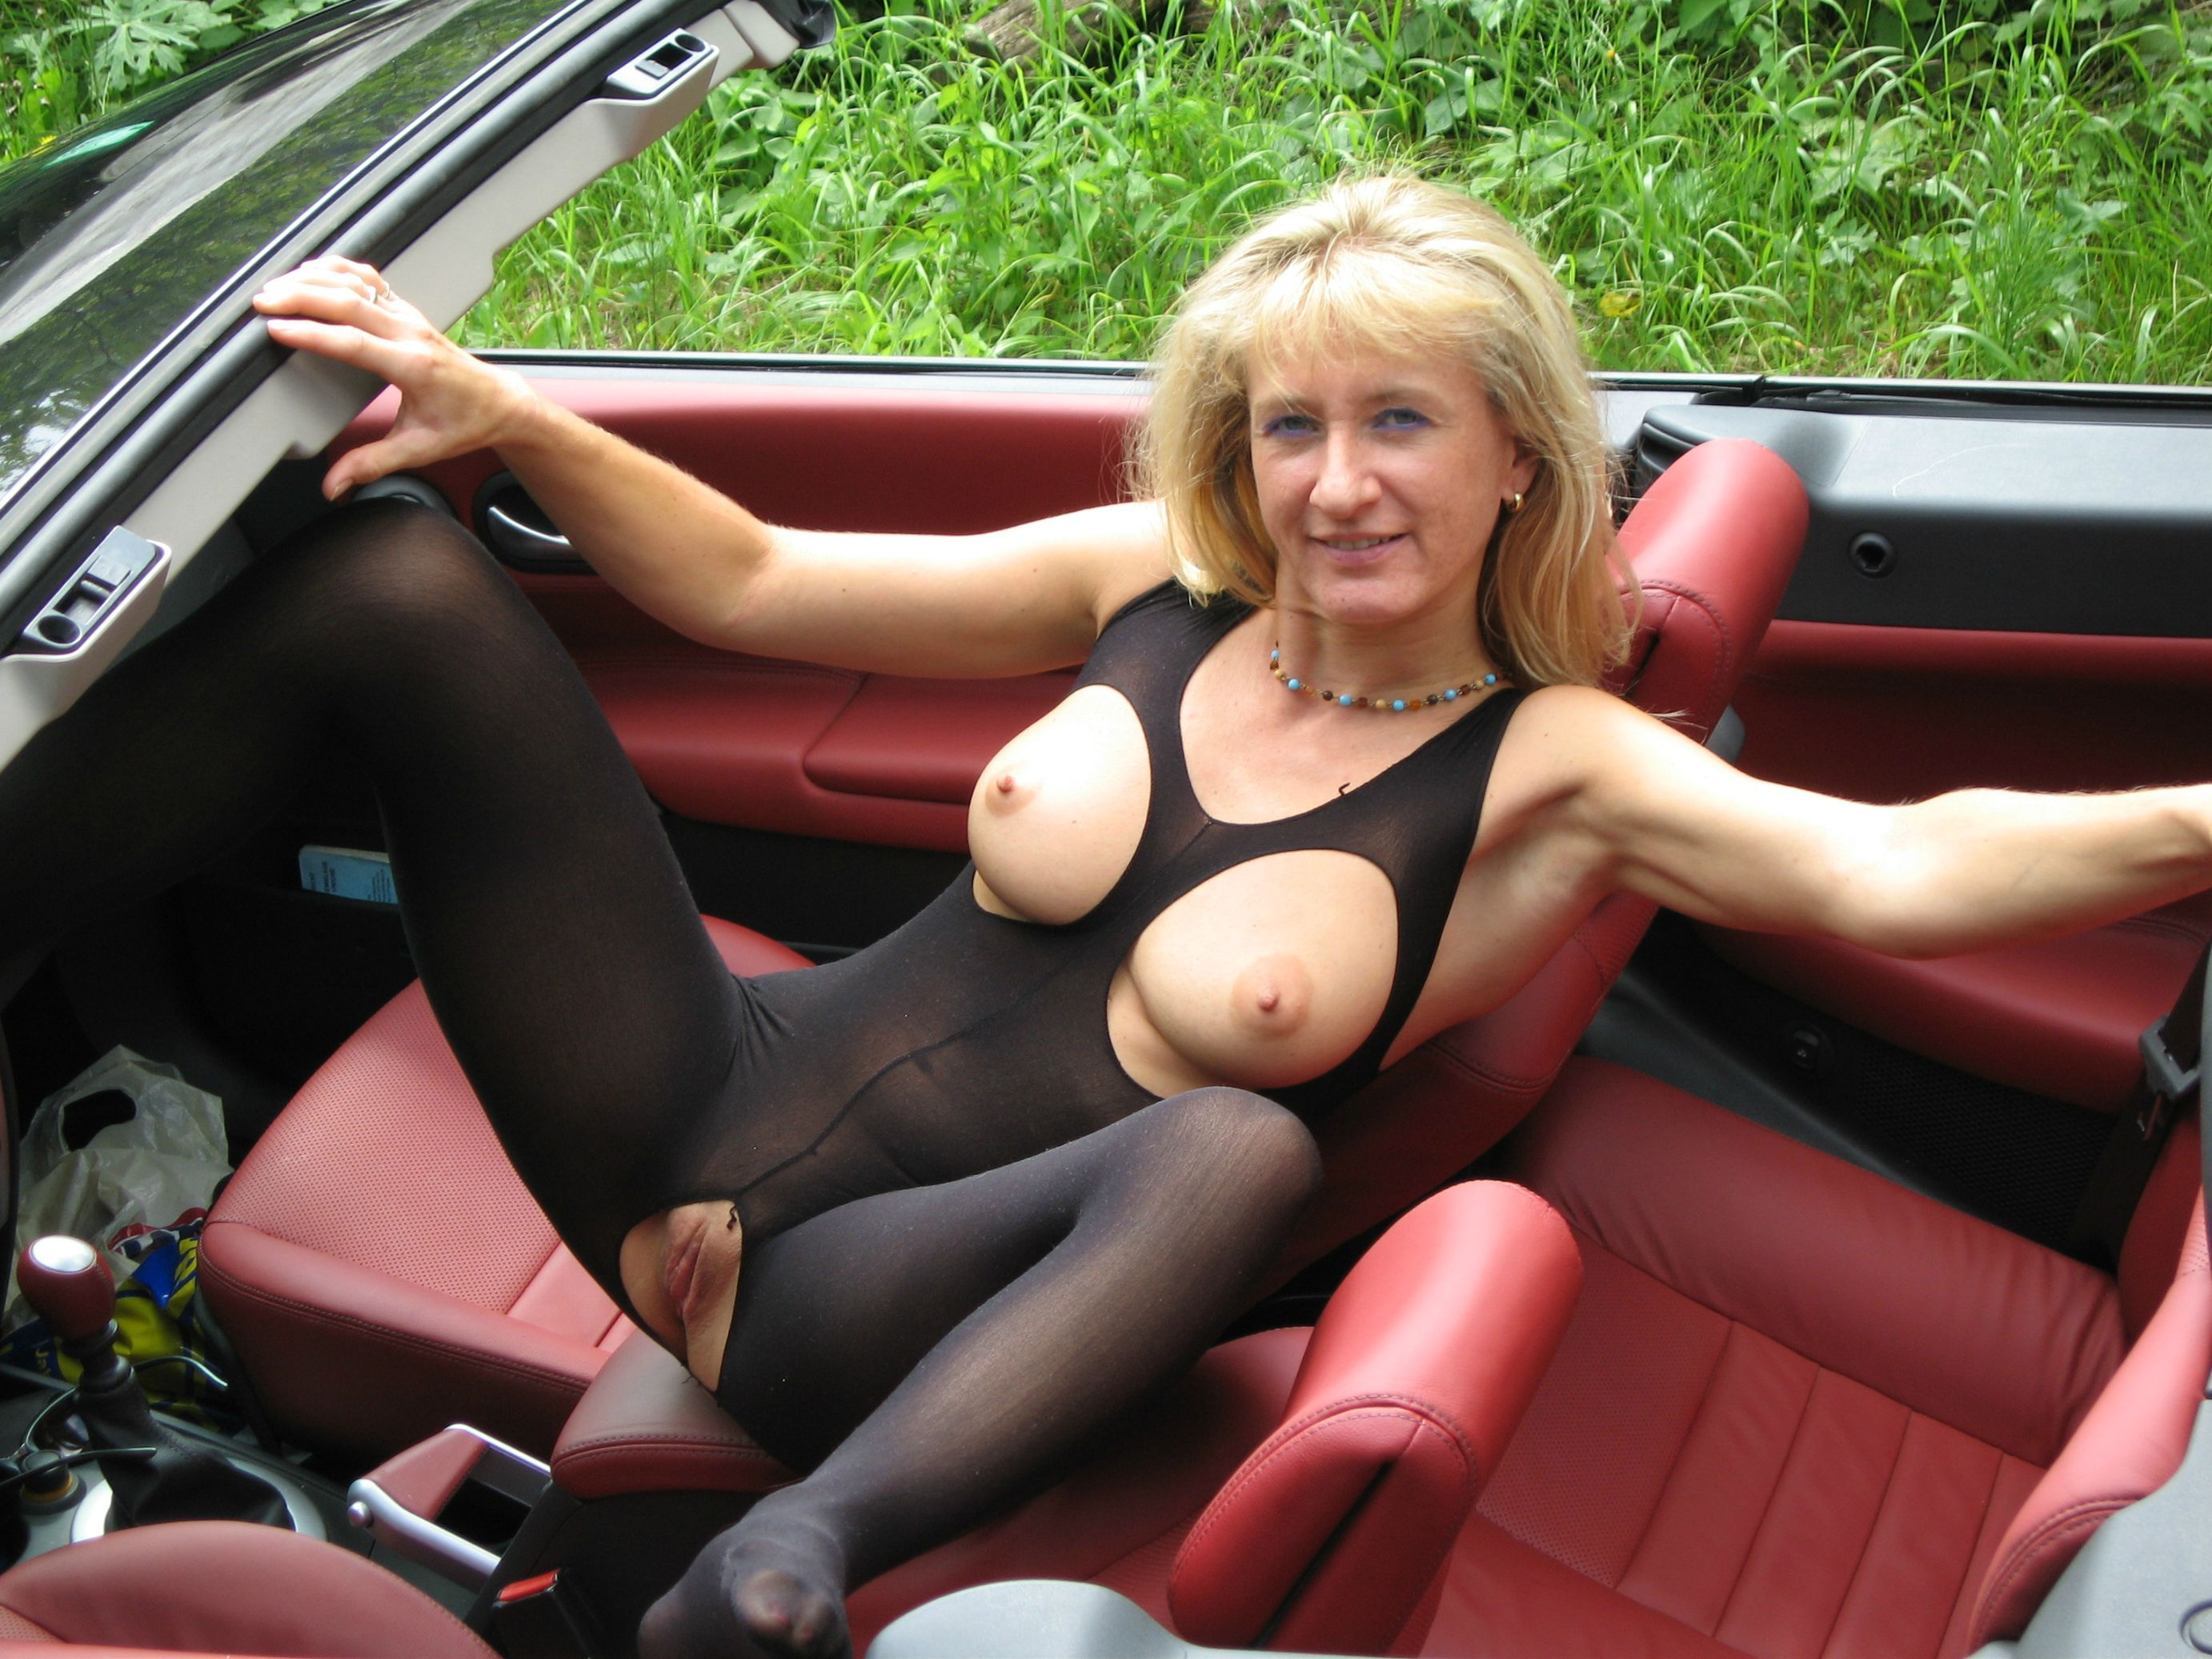 Suggest amateur pussy real flash milf consider